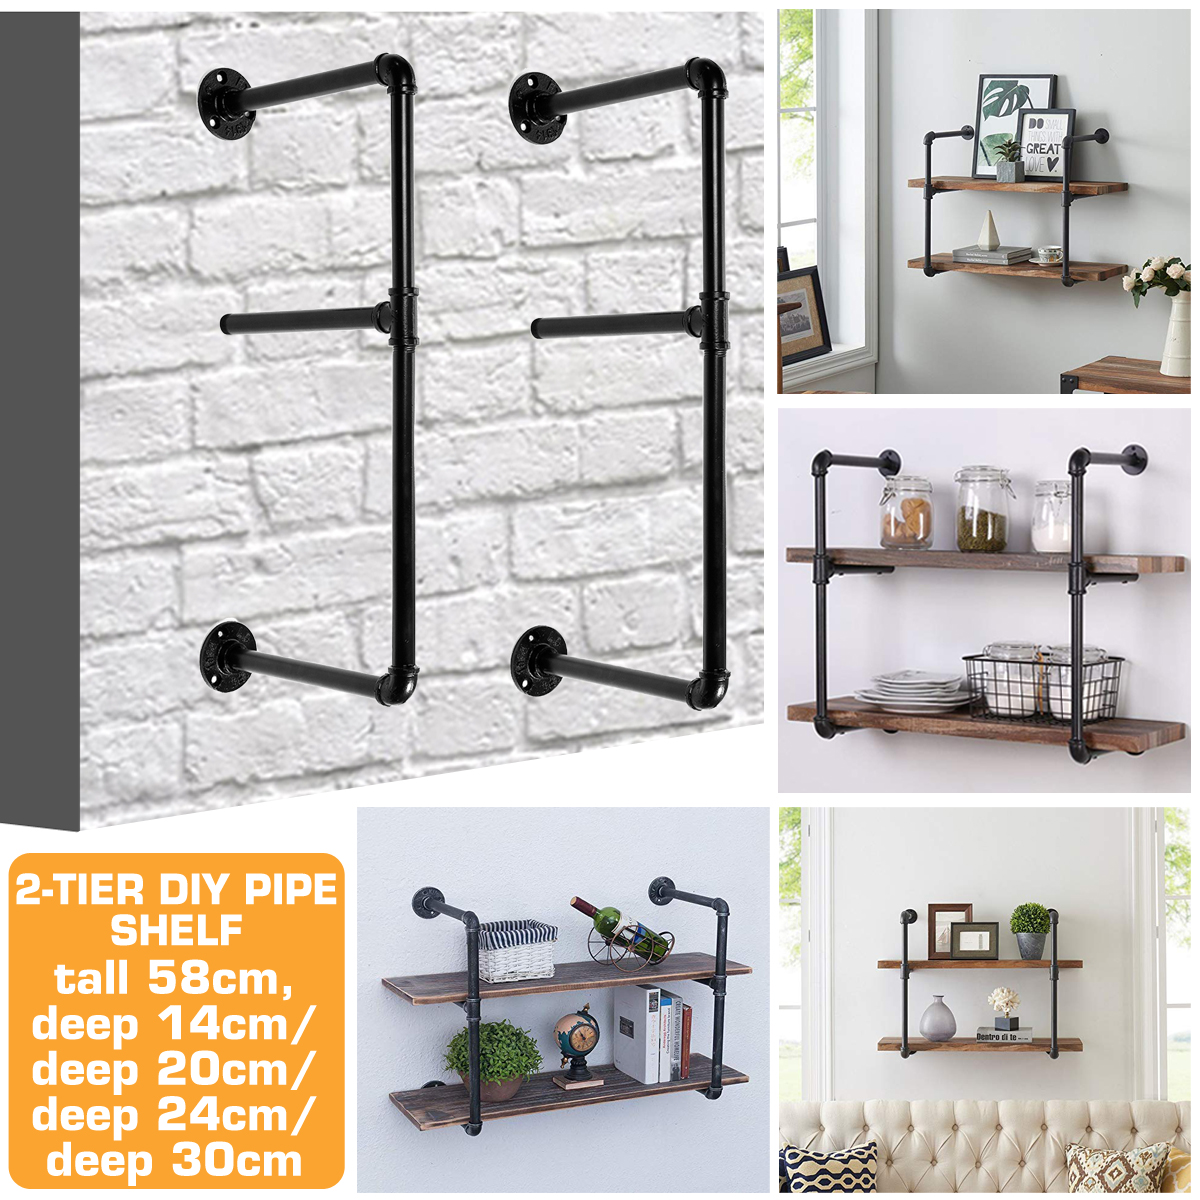 Bookshelf 2 tiers Storage Iron Shelf Rack 15/20/25/30cm Wide Organizers Modern Craft Iron Design DIY Pipe Shelf For Home Office Study Bedroom Lving room